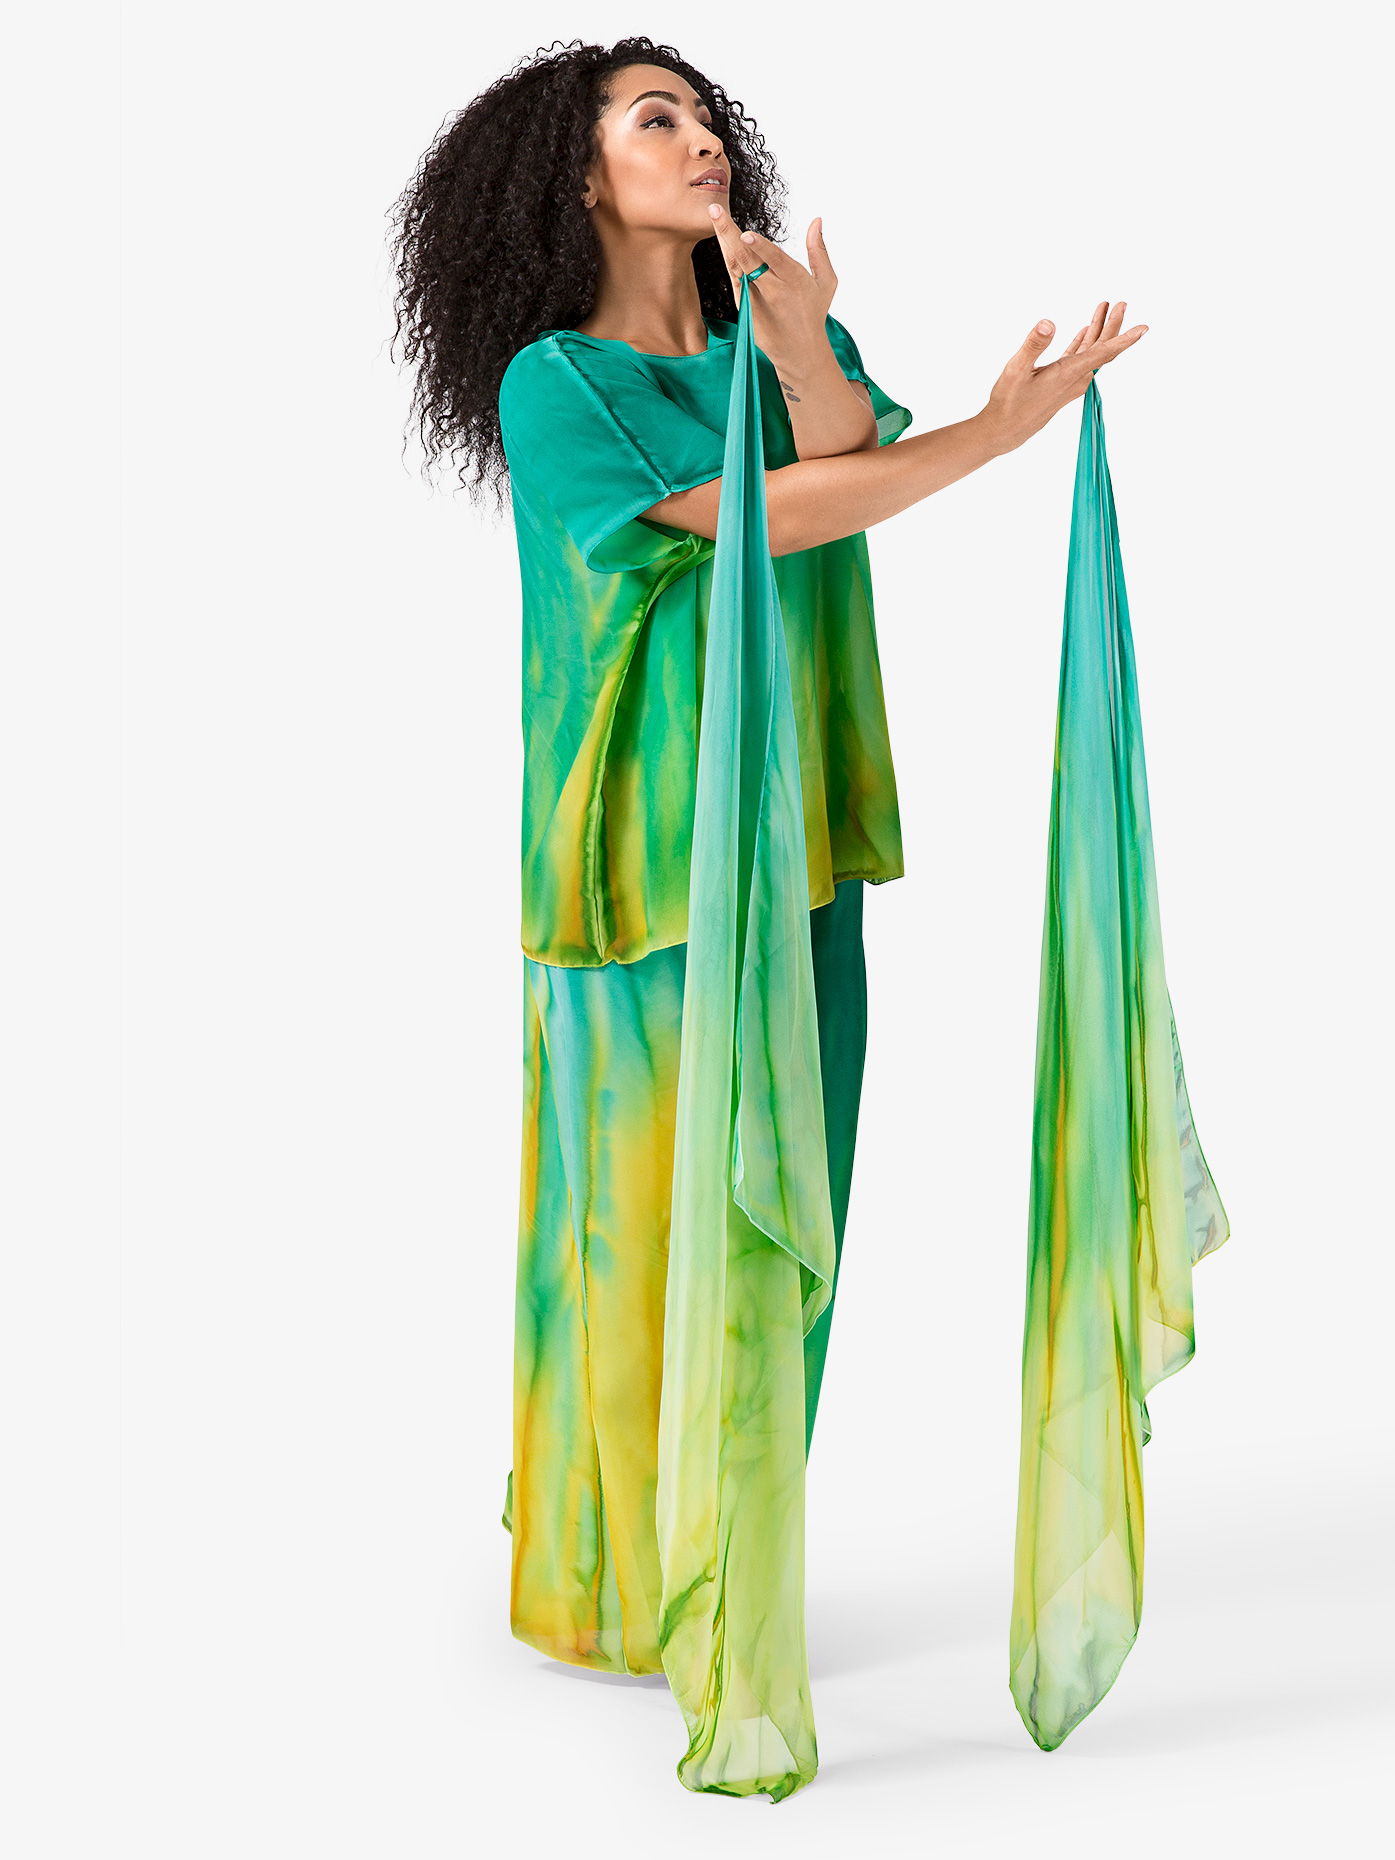 Watercolour Worship Finger Drape with Elastic Loop WC108